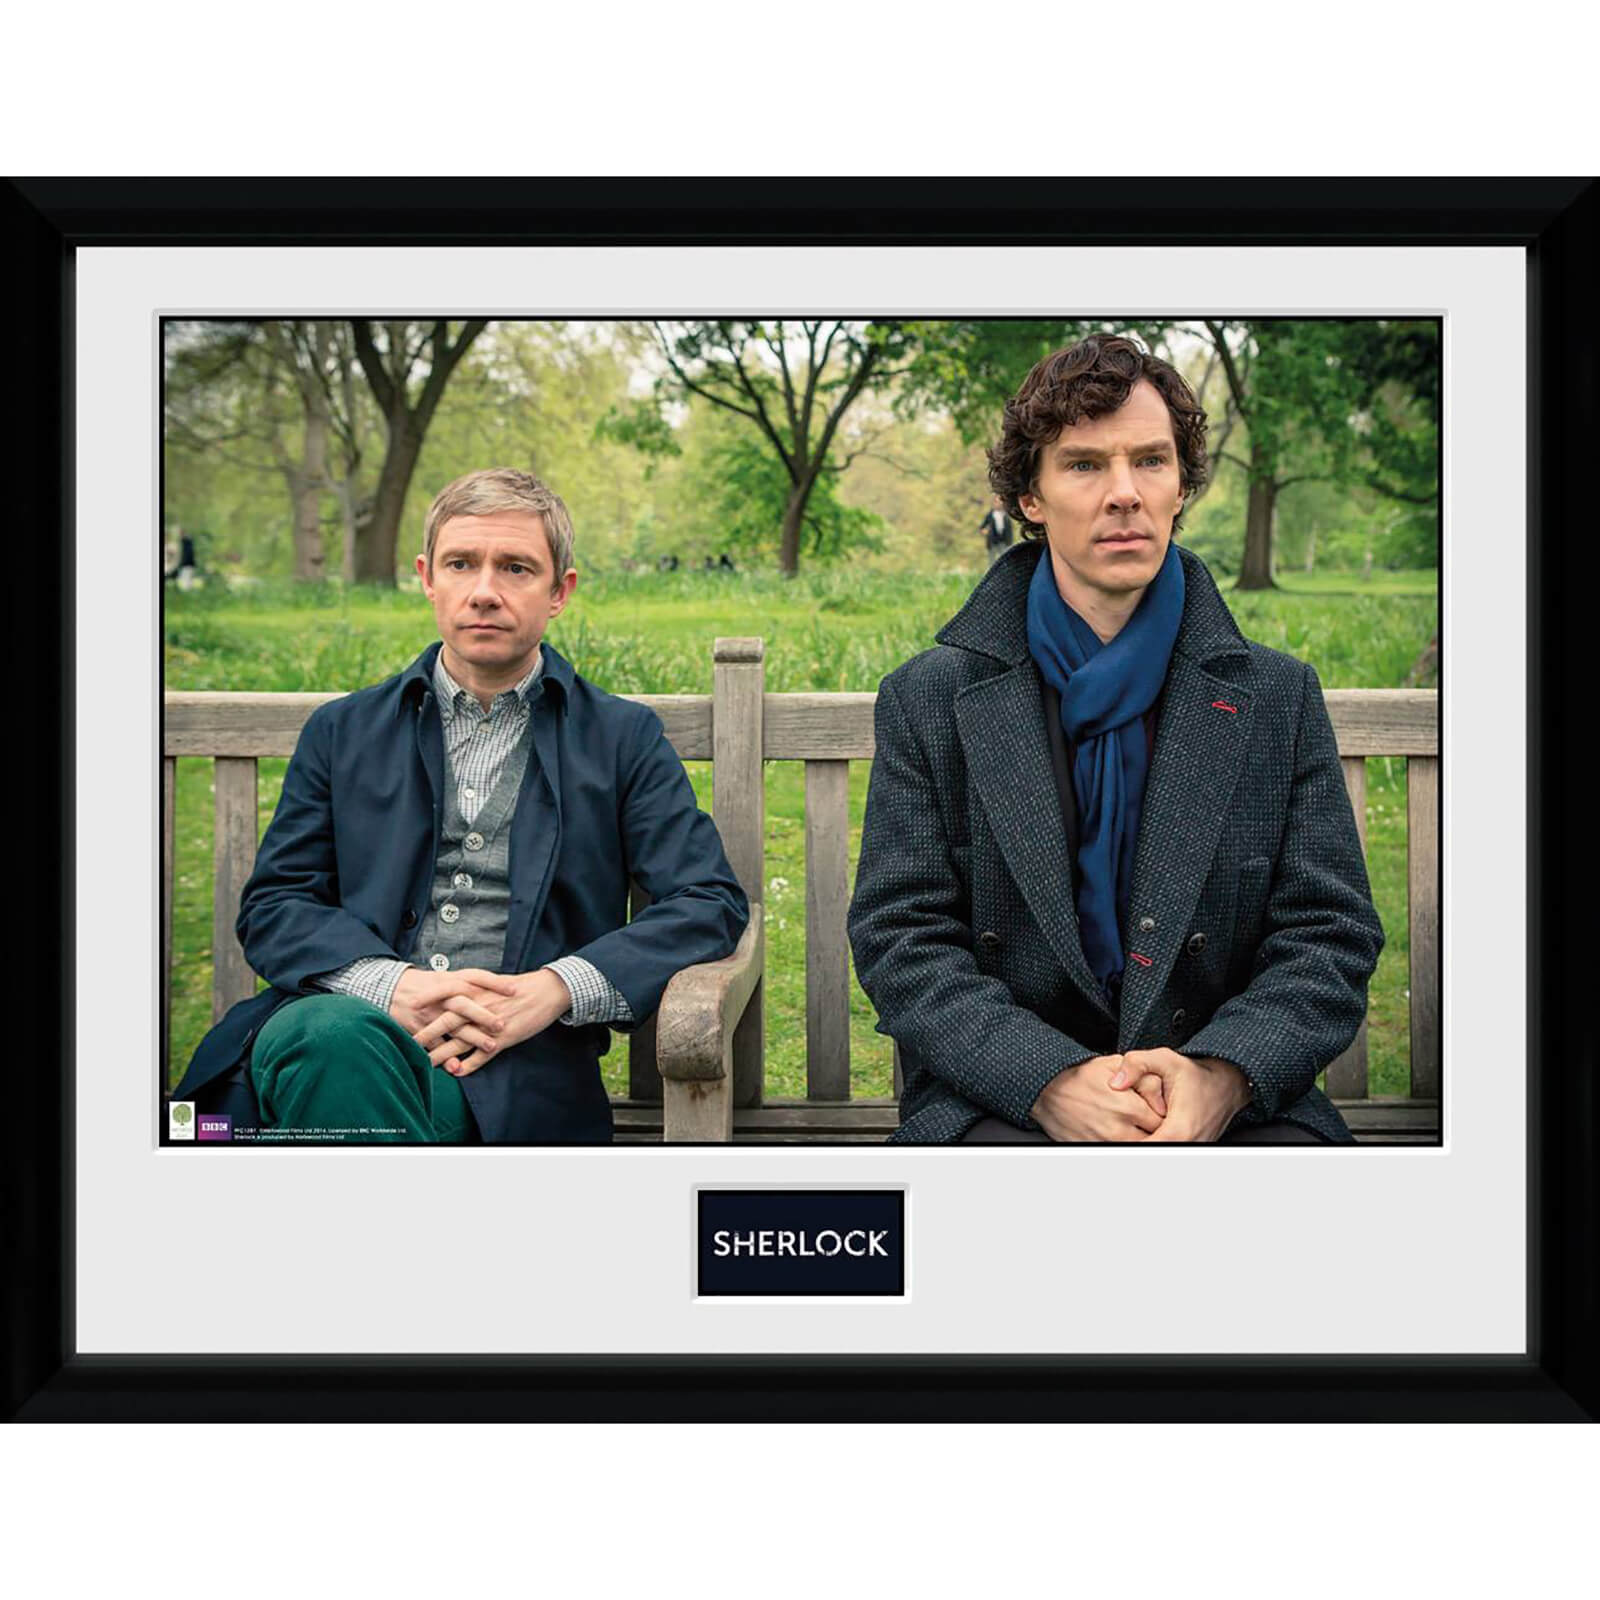 Sherlock Park Bench - 30 x 40cm Collector Print